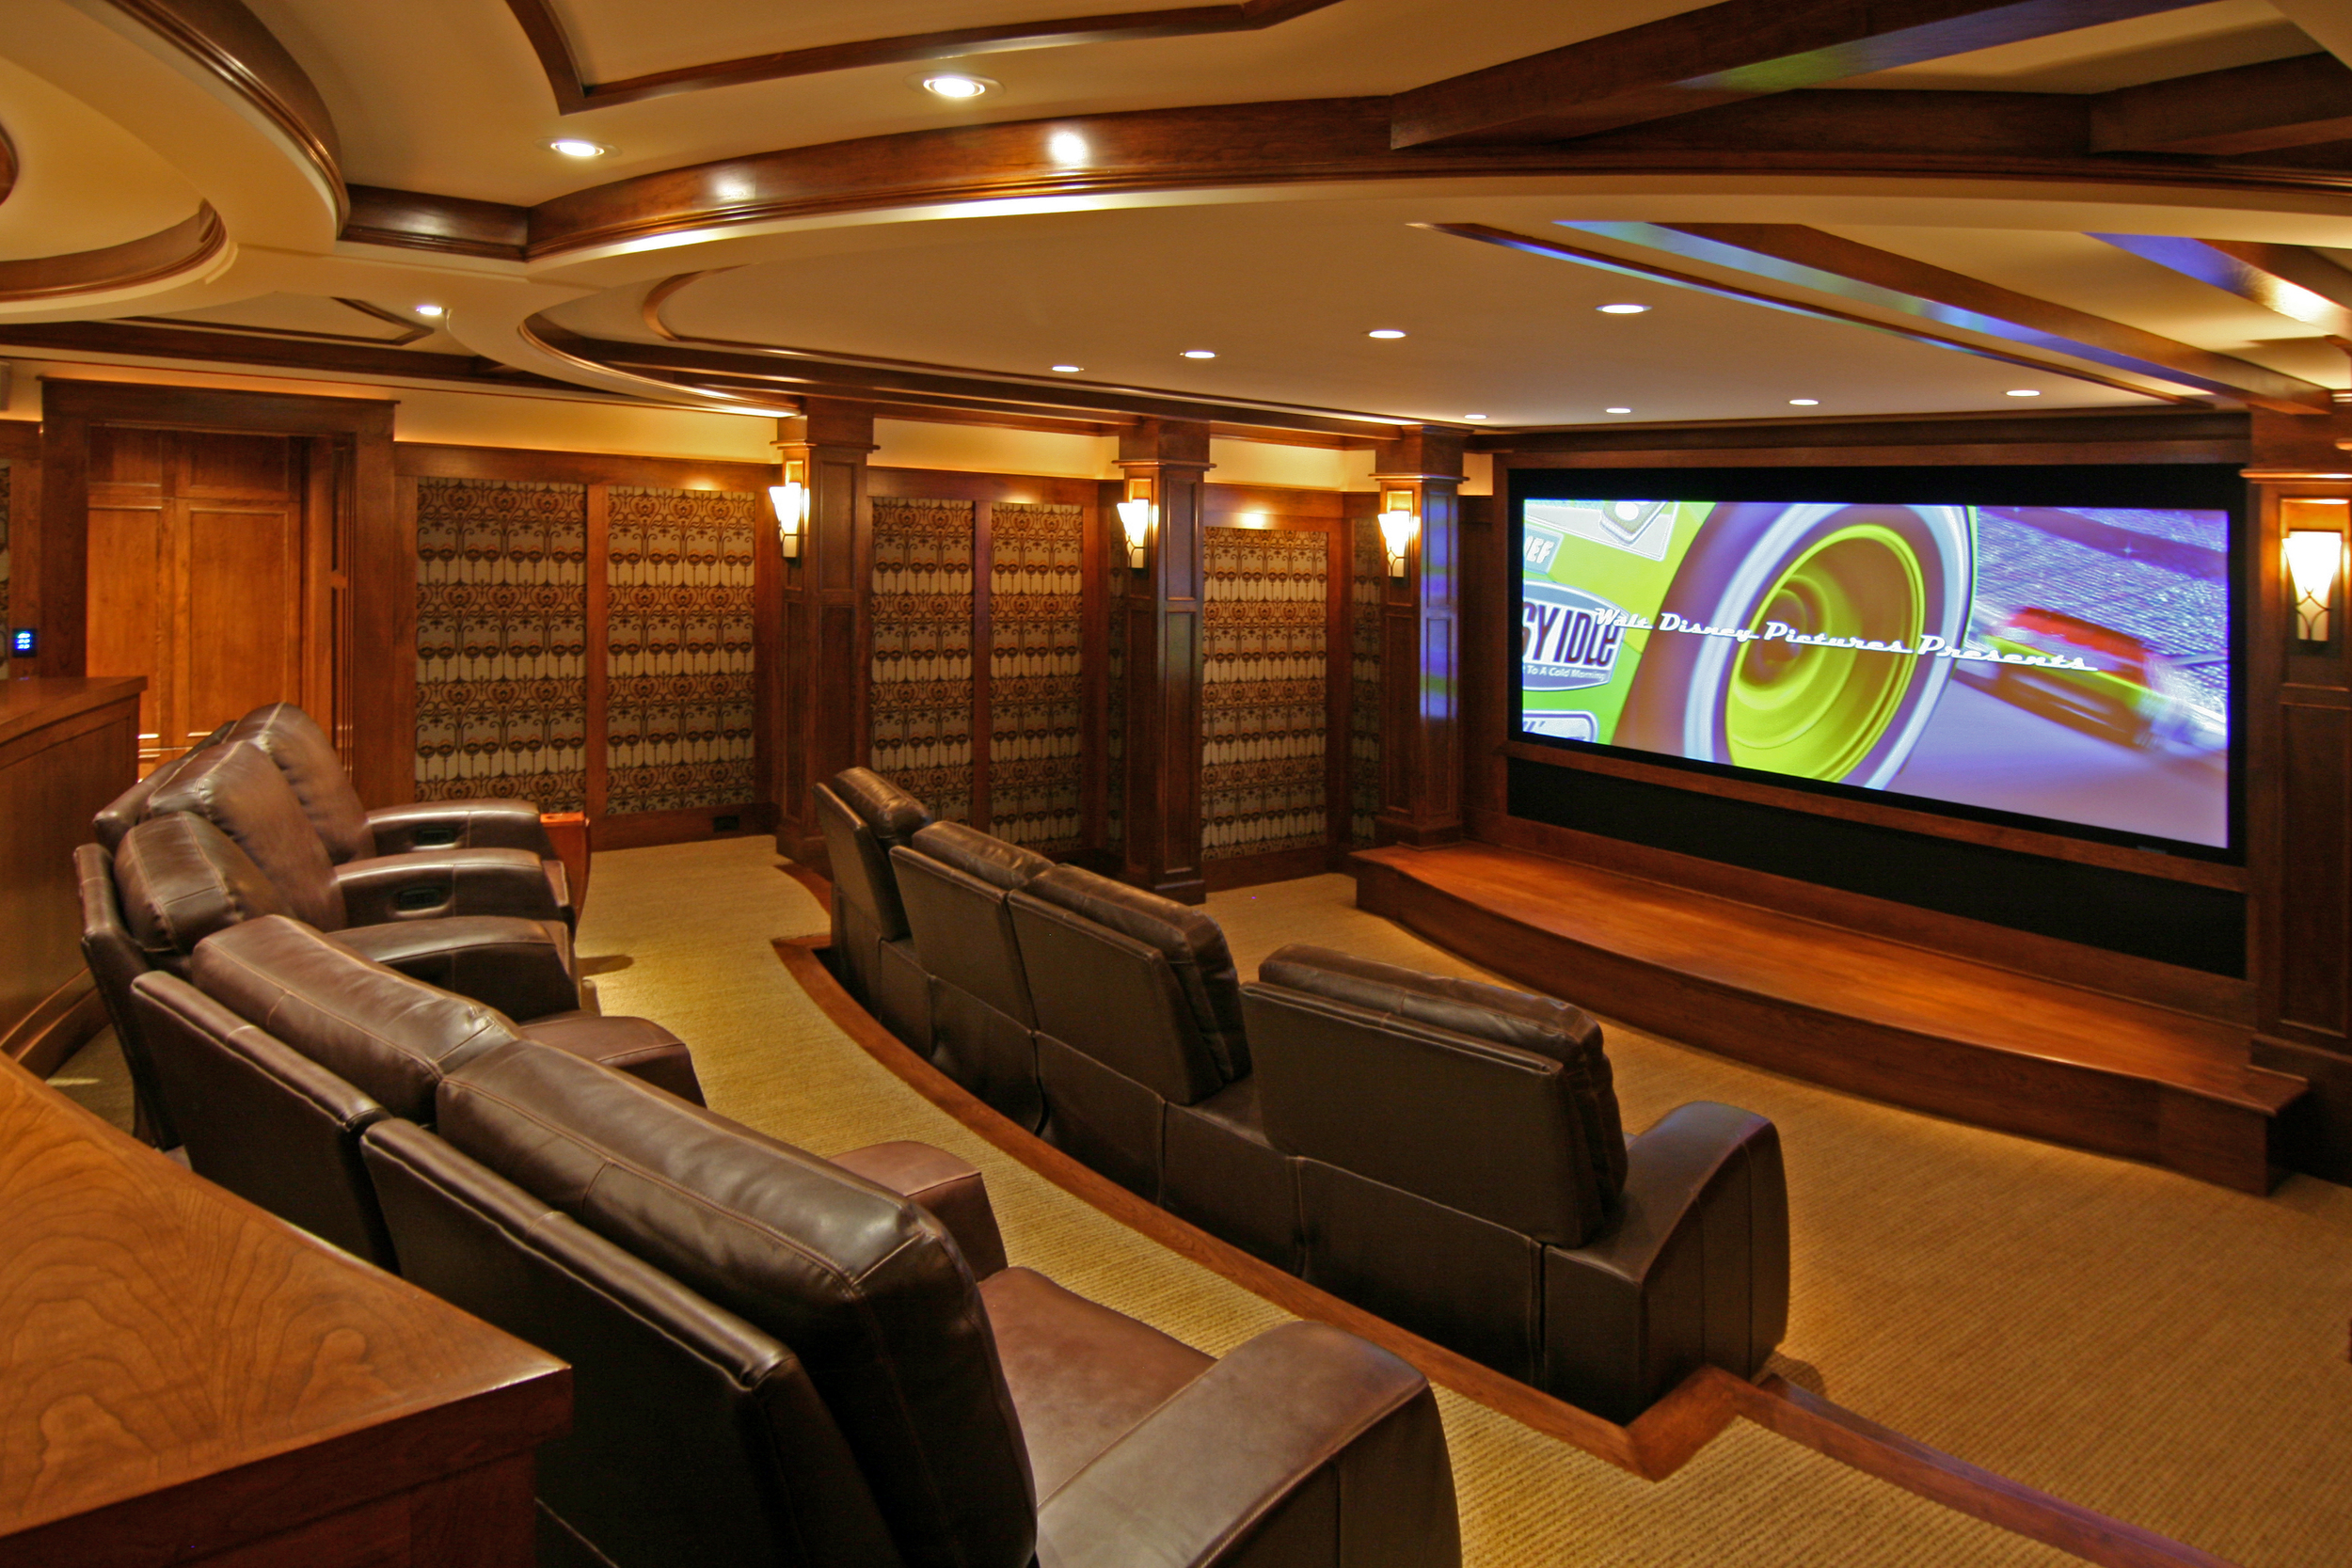 2009ParadeDreamHome-Theater.jpg